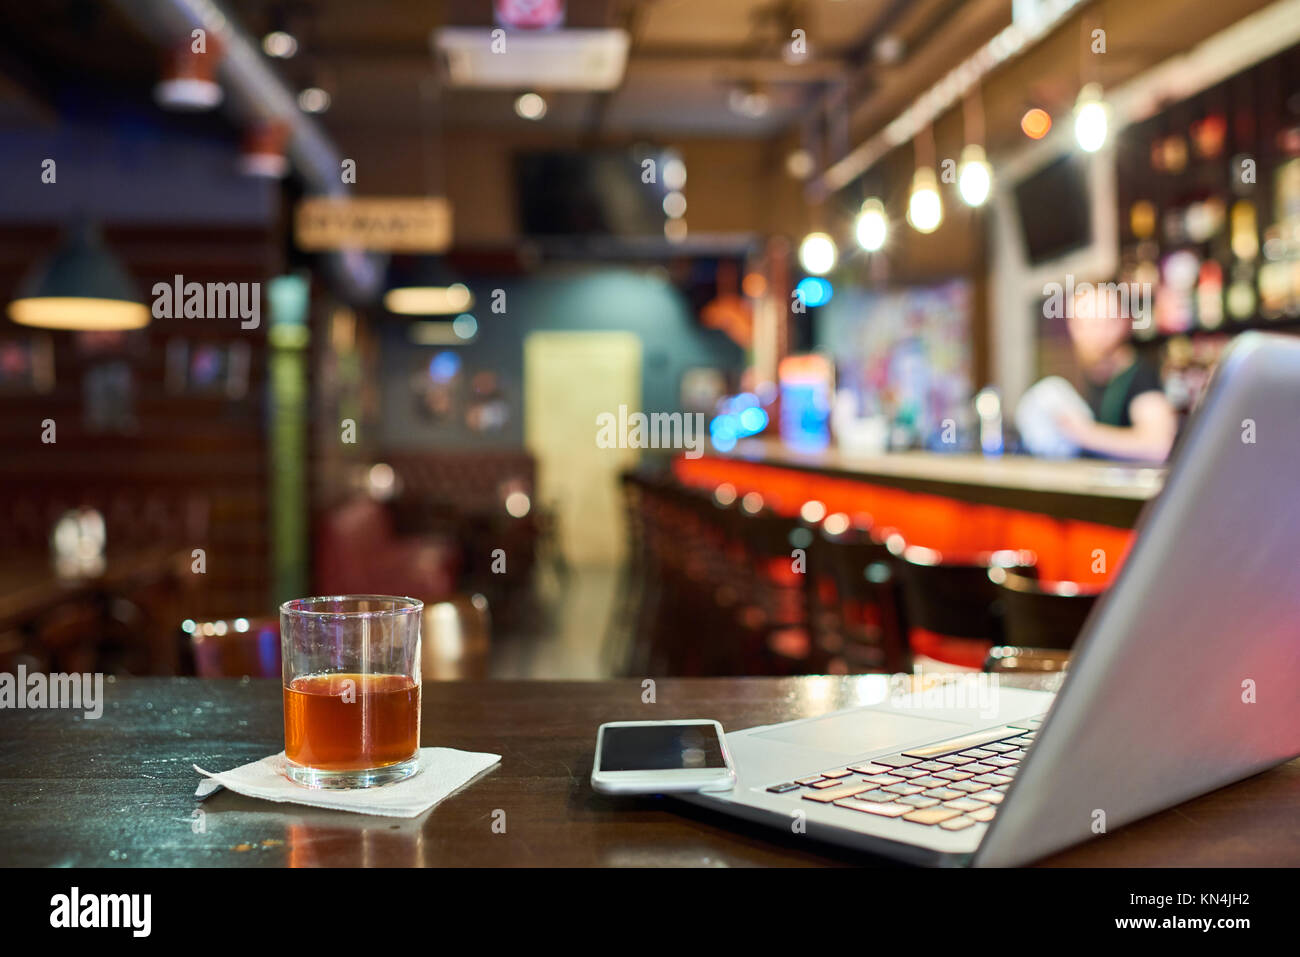 Workplace in Pub - Stock Image